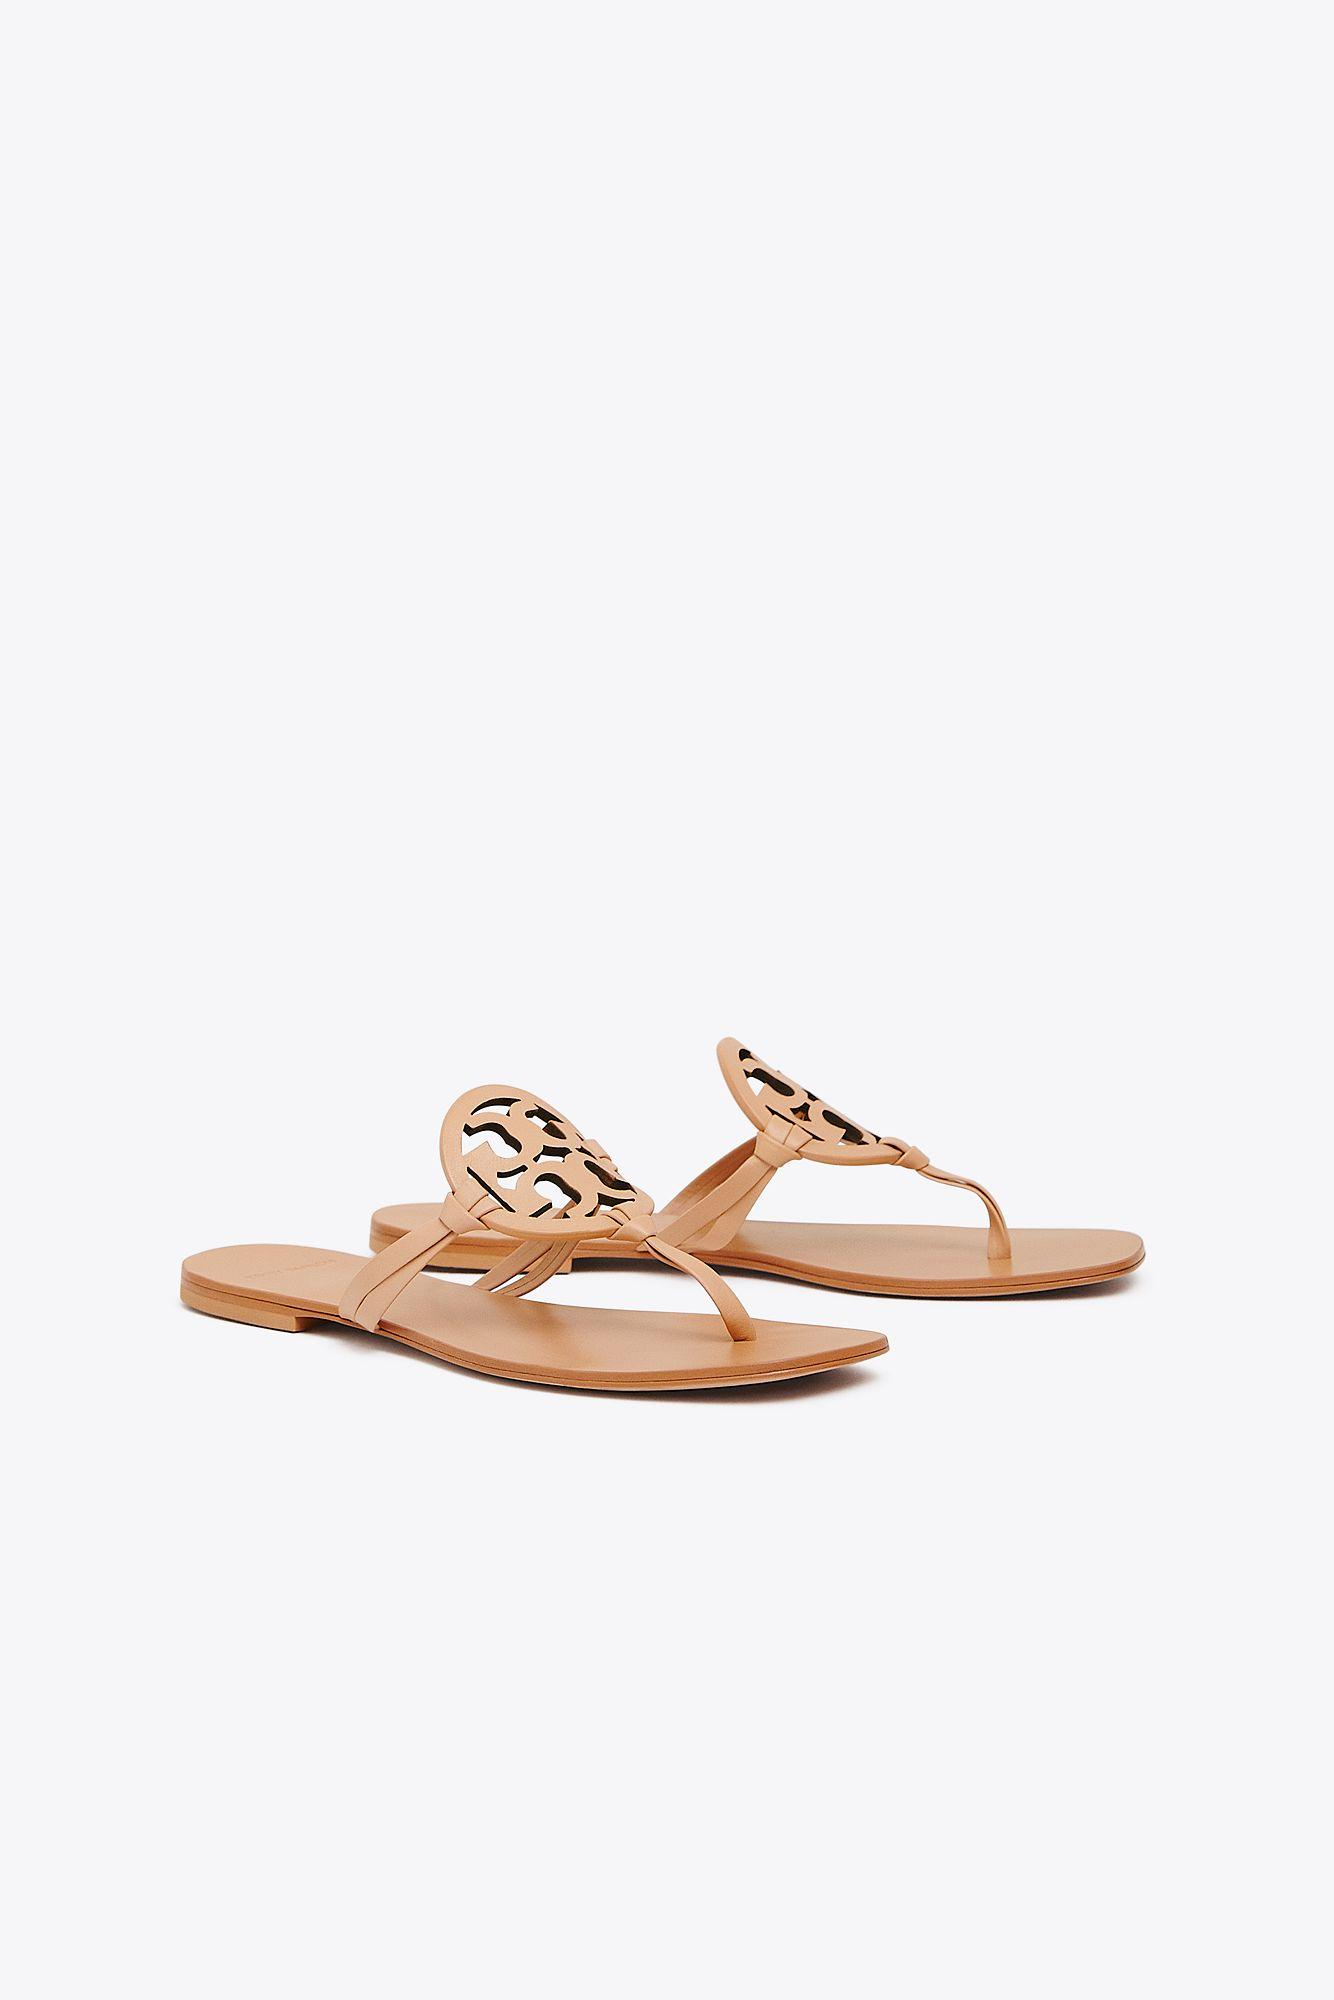 4897394f11b Tory Burch. Women s Miller Square-toe Sandal